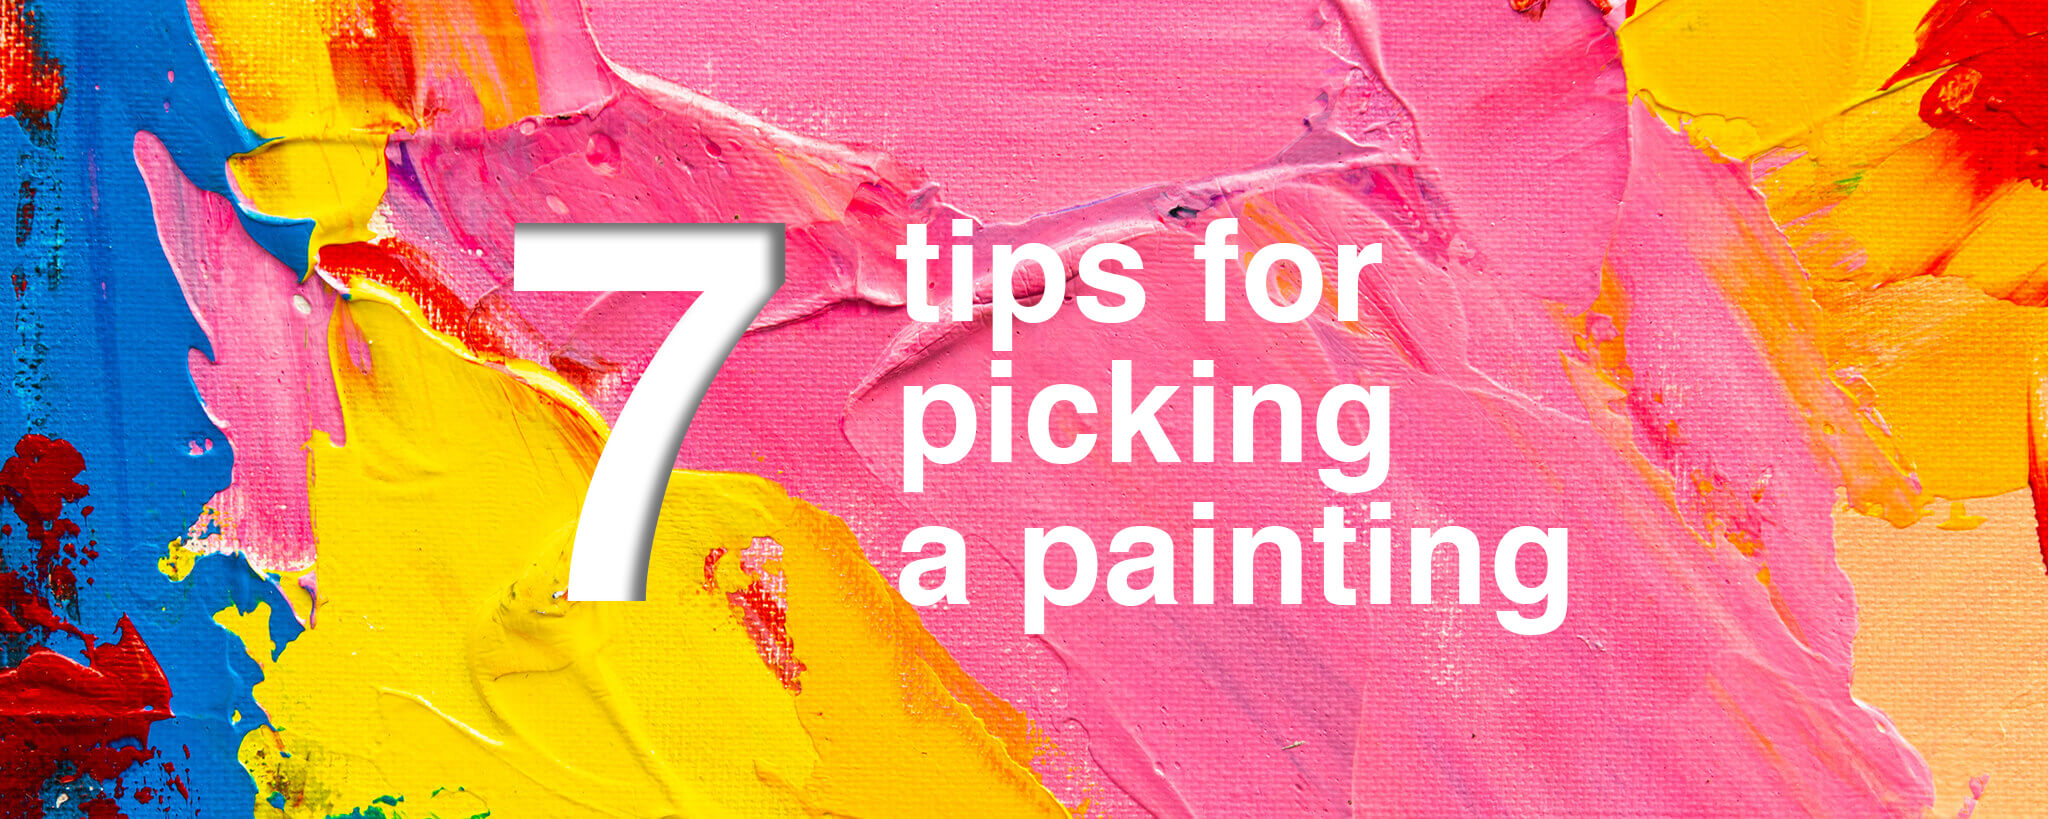 7 Tips for Picking a Painting